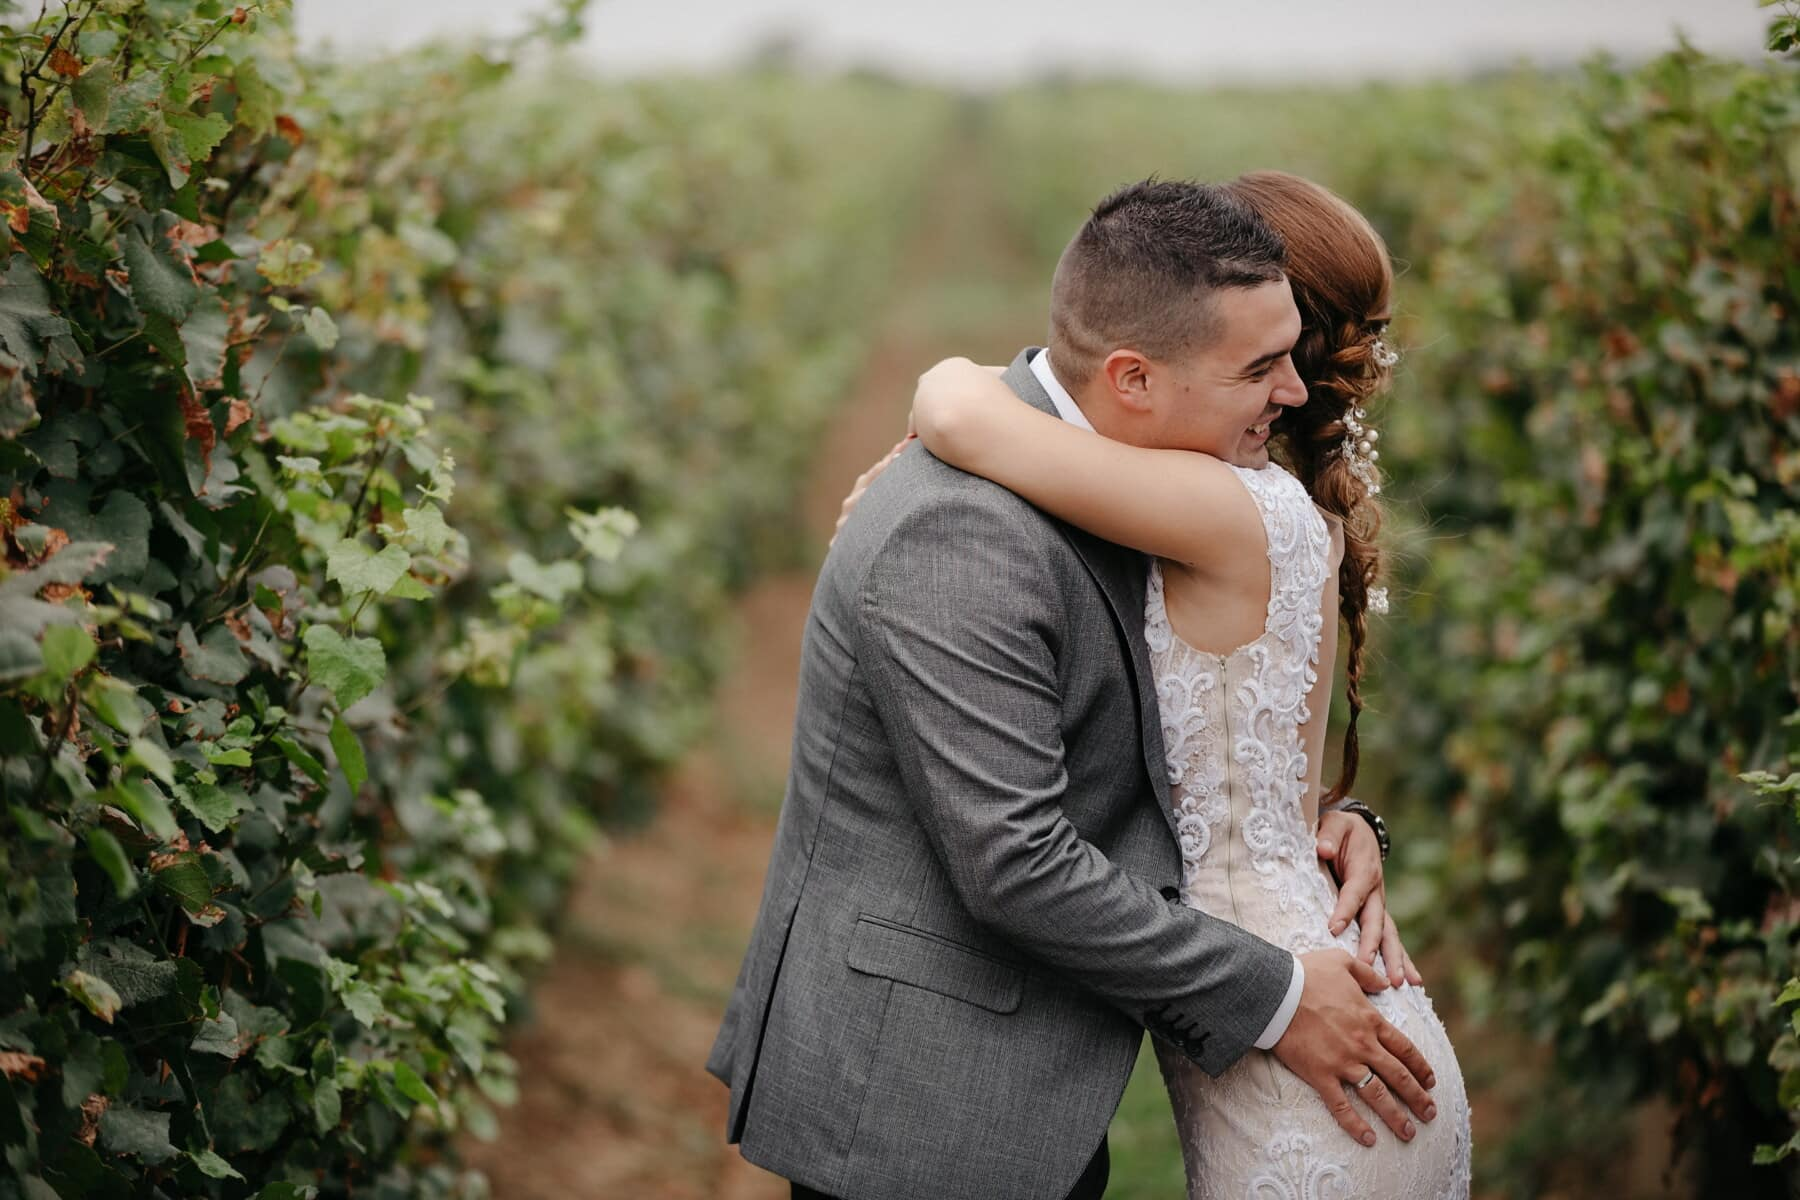 vineyard, love, hugging, love date, lover, romantic, park, outdoors, portrait, nature